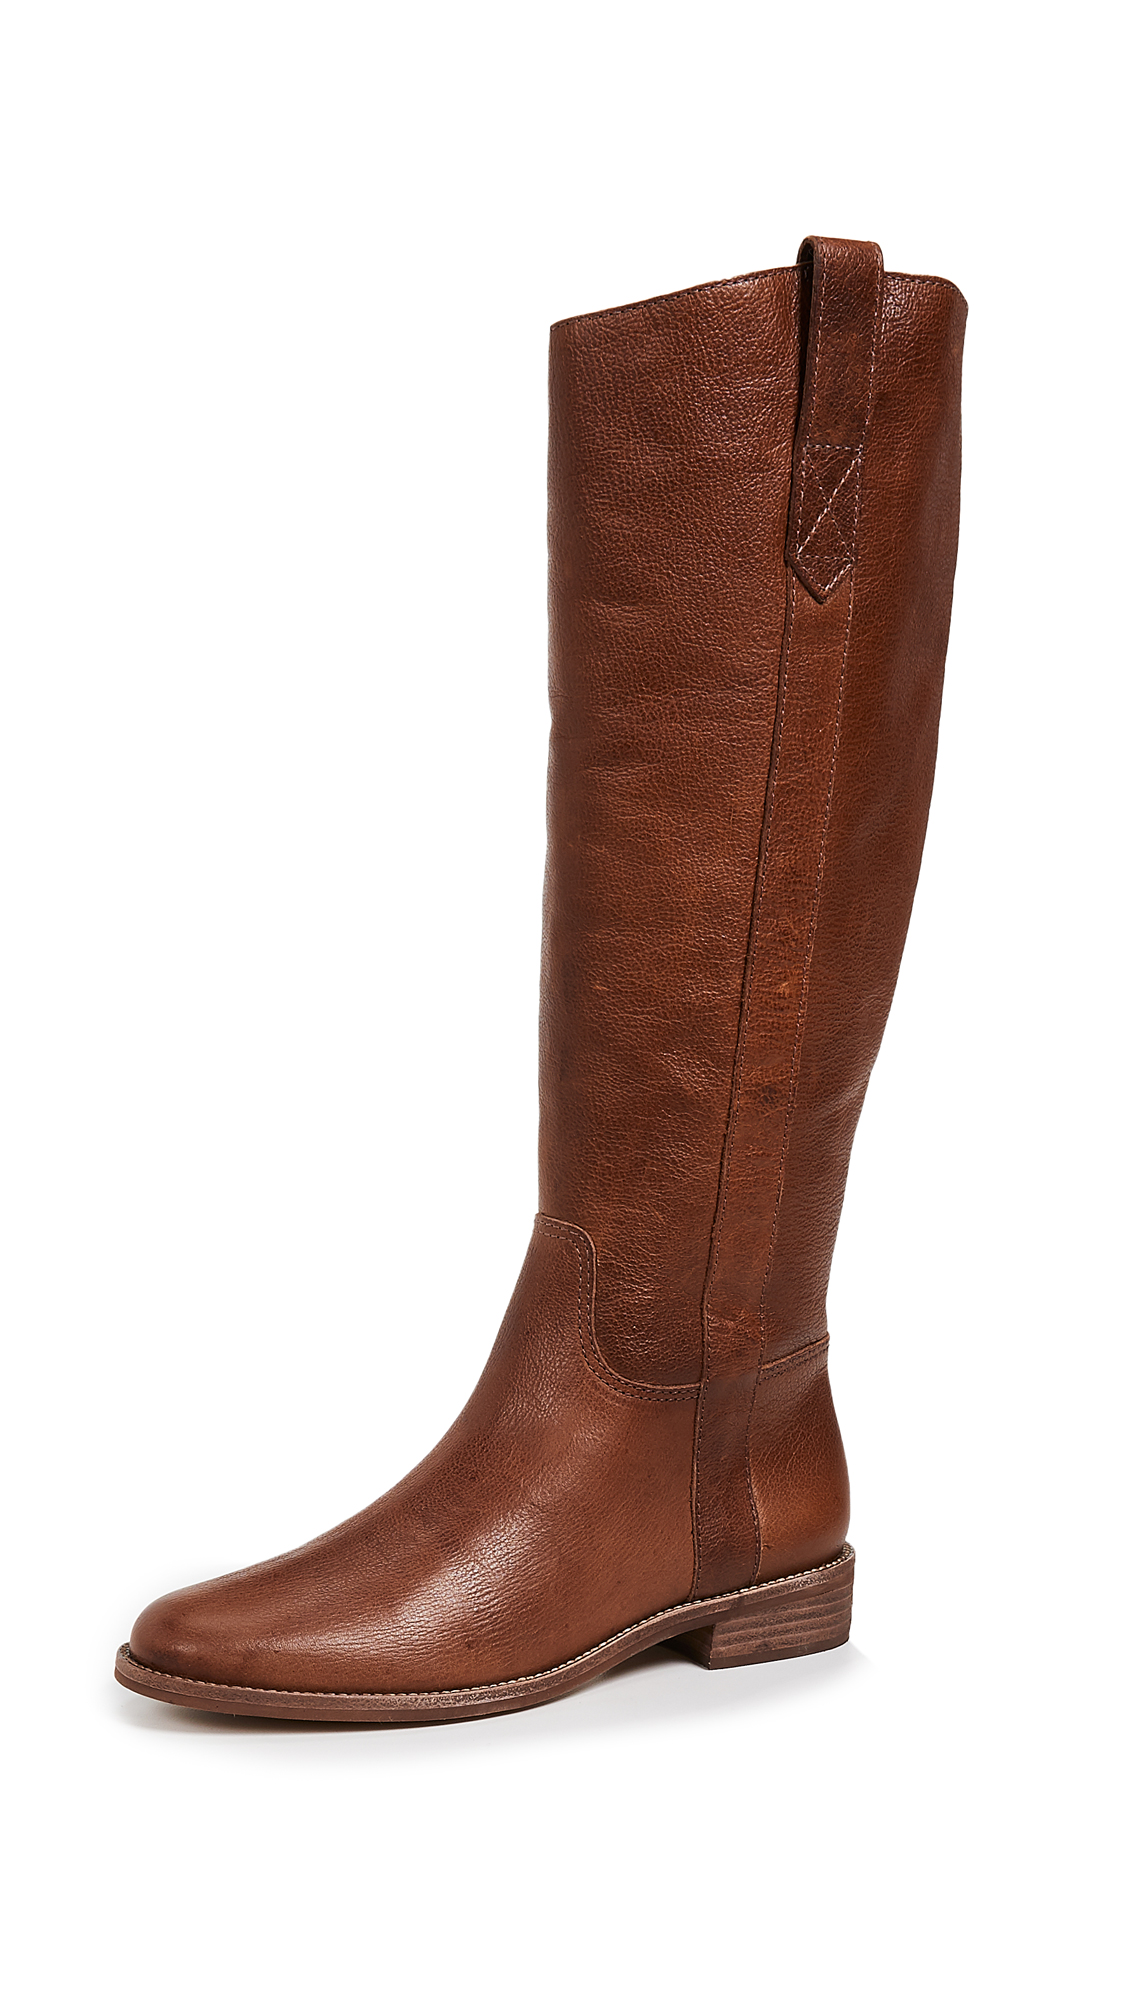 Madewell The Winslow Knee High Boots - English Saddle